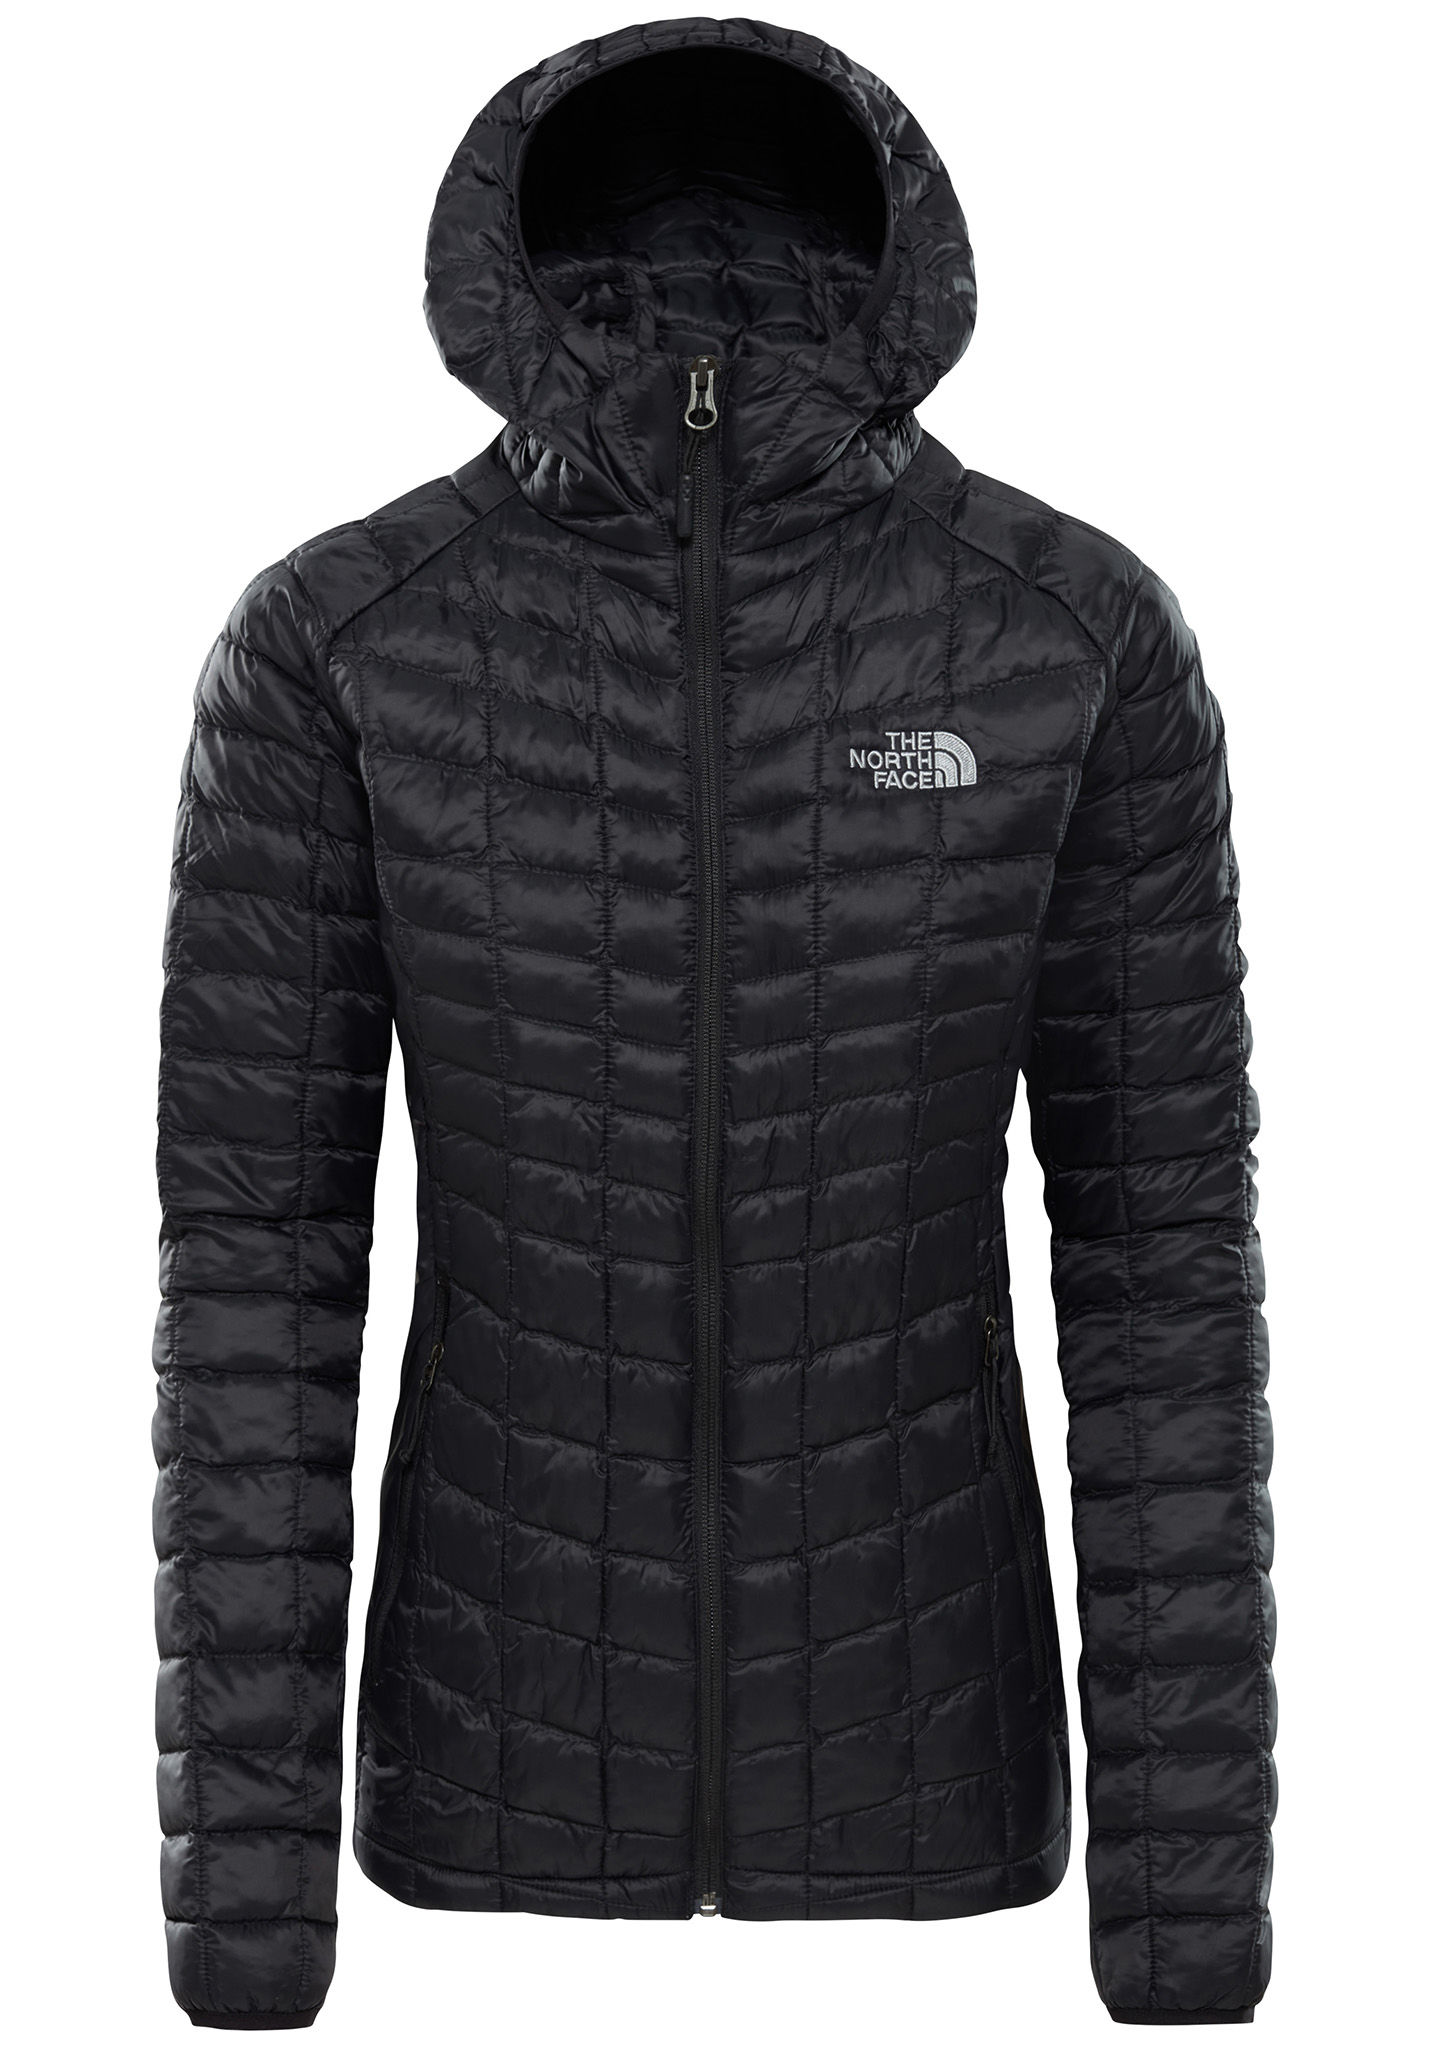 77b23865ce THE NORTH FACE Thermoball Sport - Funktionsjacke für Damen - Schwarz -  Planet Sports